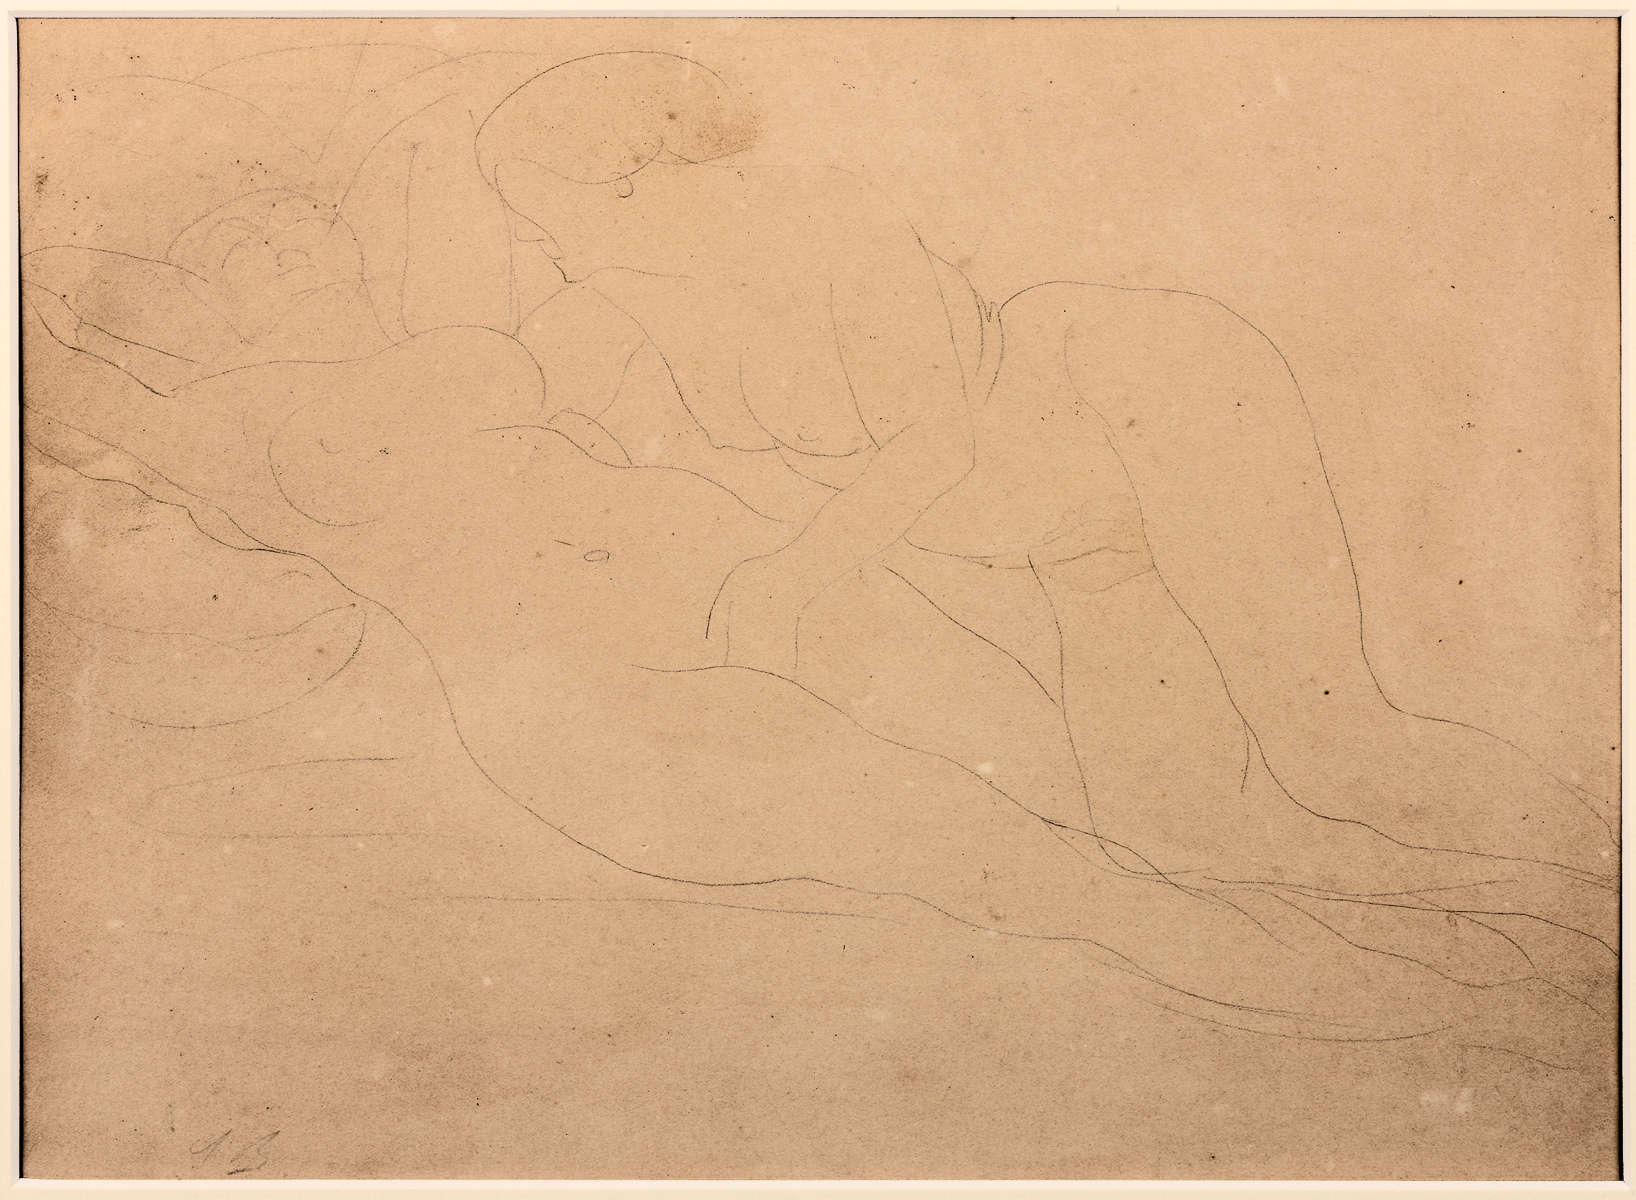 Auguste RODIN (1840-1917)Graphite on wove paper mounted to board24.1 x 31.8 cmSigned in graphite at the bottom left: 'A. R.'Inscribed on the verso on the board with stencil, black ink: 'A. Rodin /Drawing /Frame'n°153; annotated with brush: a picture framer label 106; 'Moirinat'